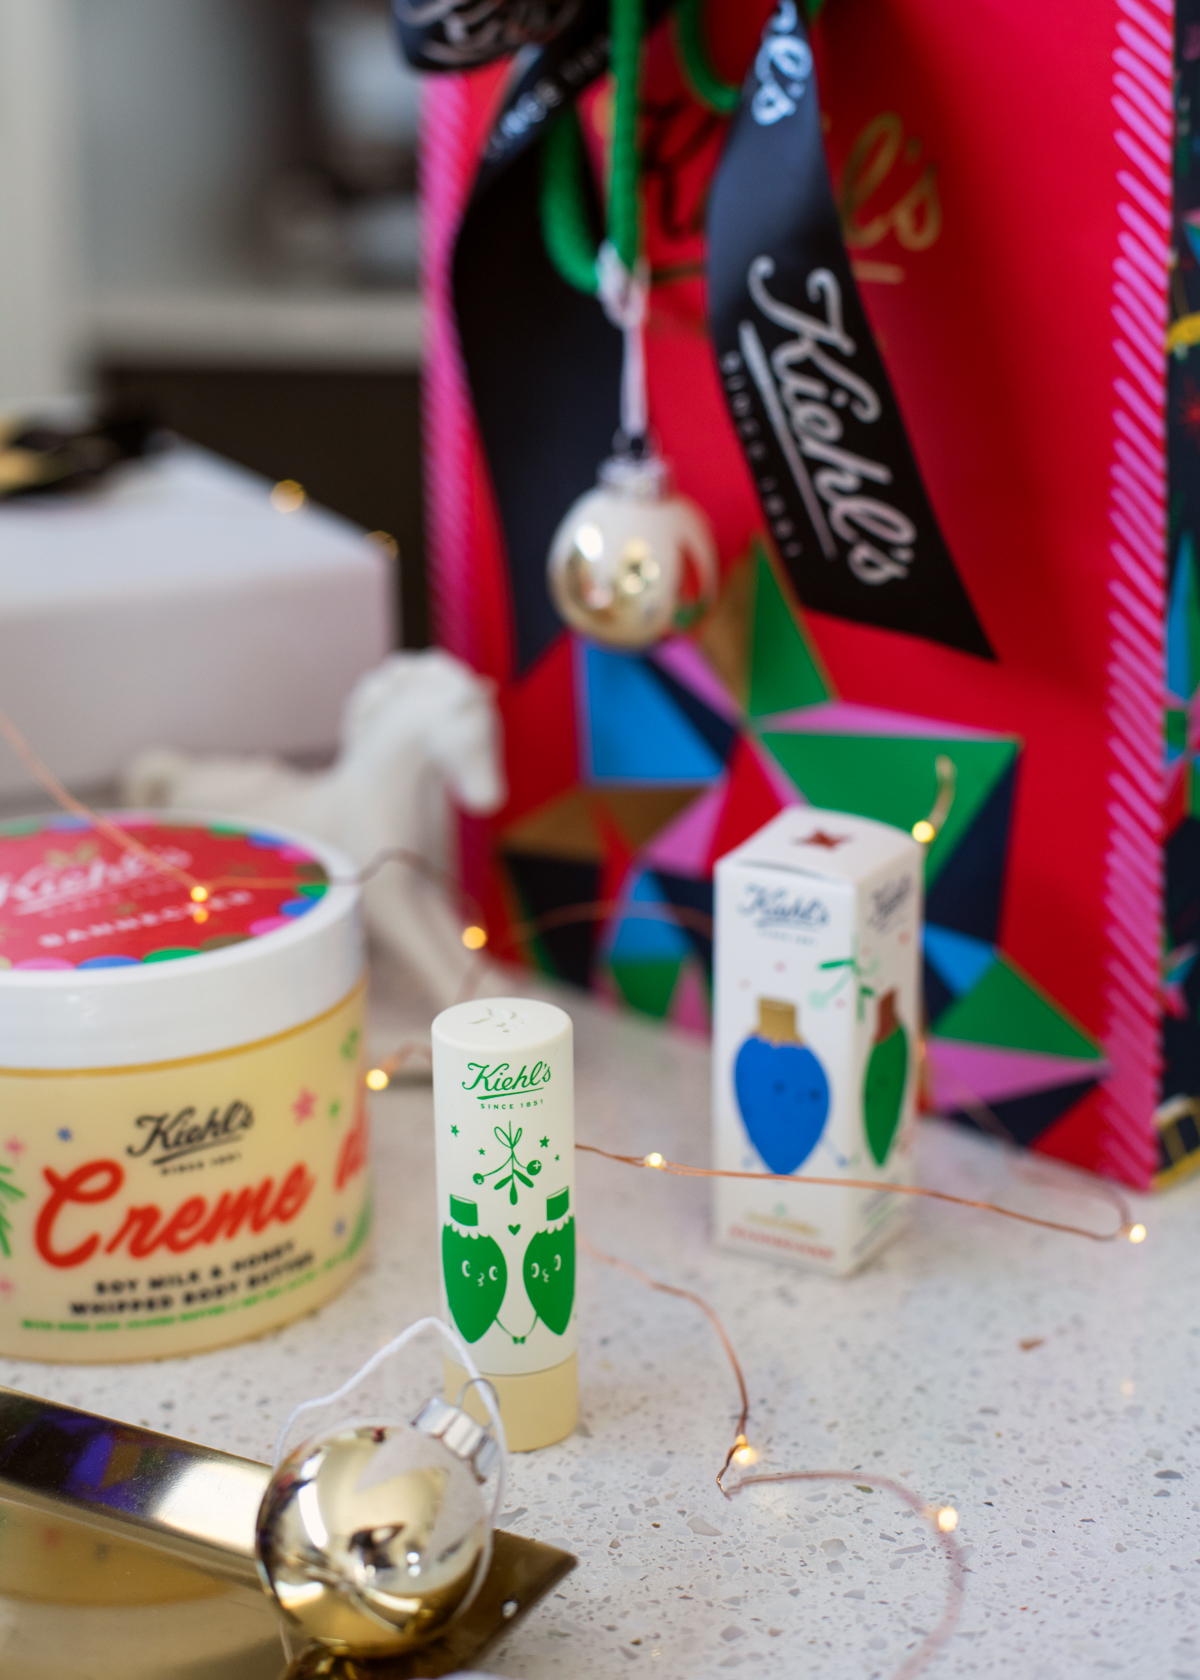 2018 Christmas gift guide Inspiring Wit blog featuring beauty gift ideas Kiehl's Christmas products